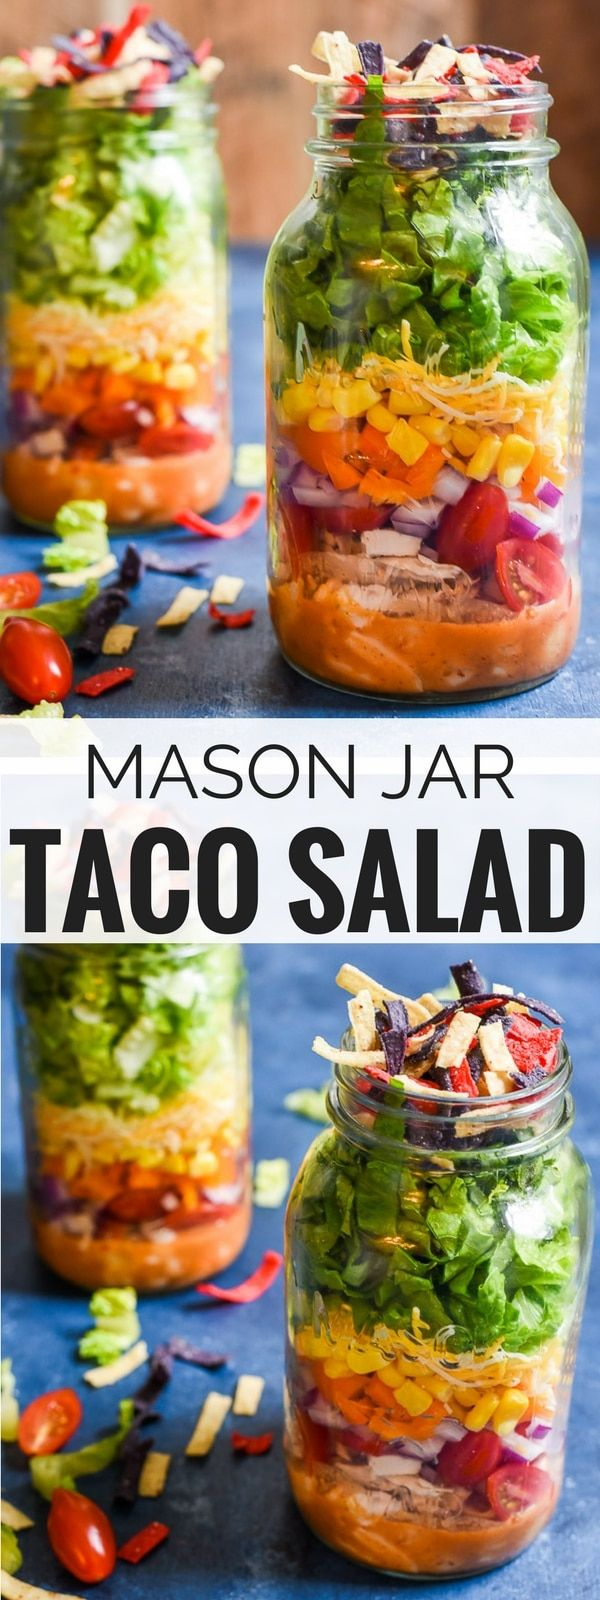 Mason Jar Taco Salads with a smoky chipotle honey vinaigrette is the perfect grab-and-go lunch!